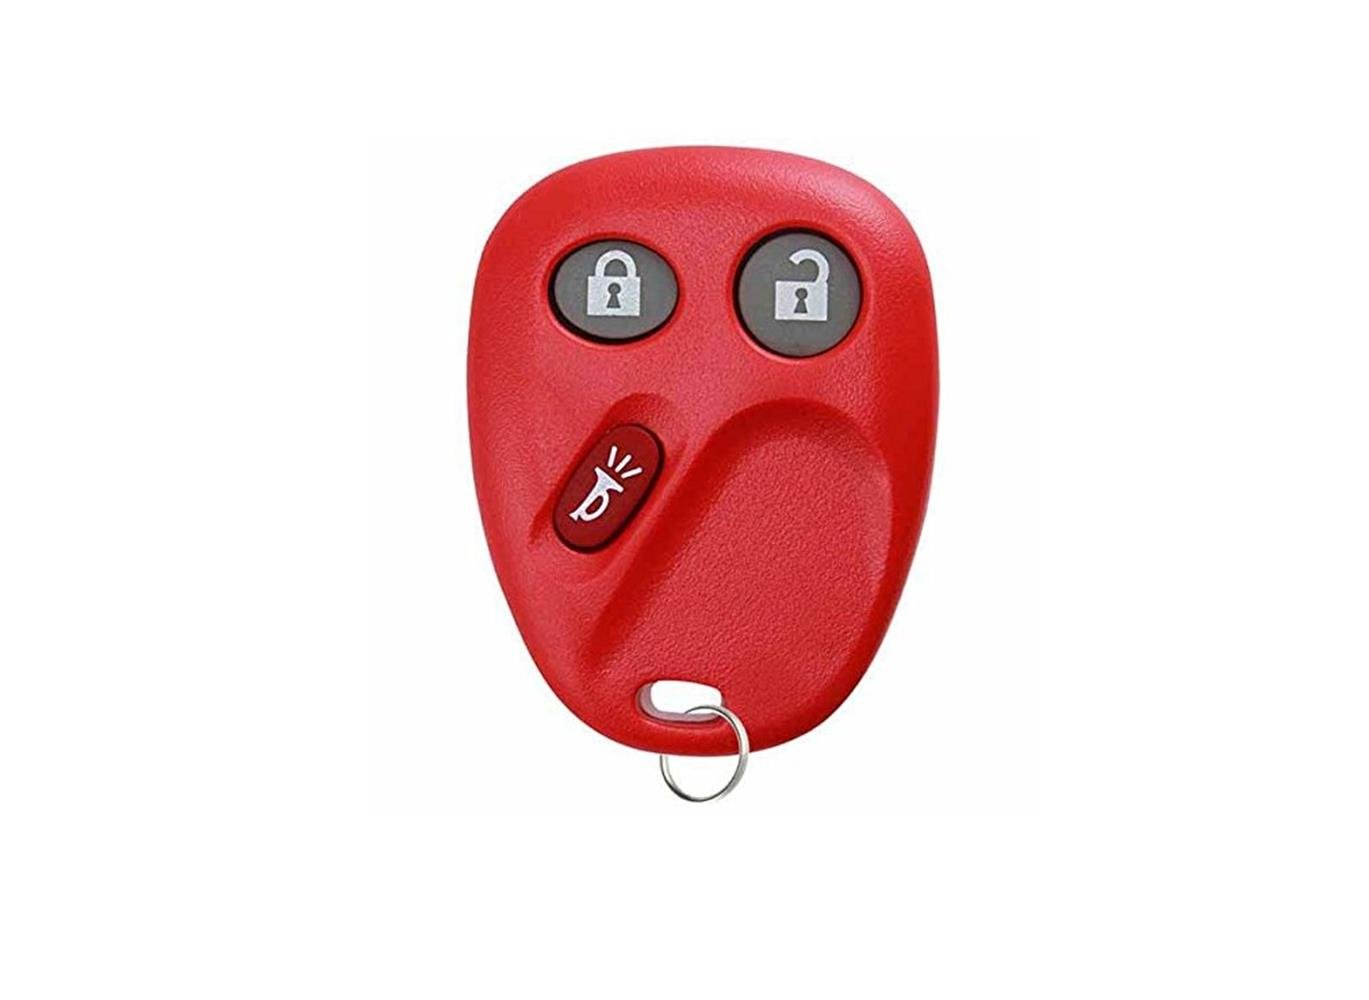 KeylessOption Keyless Entry Remote Control Car Key Fob Replacement for LHJ011 Red